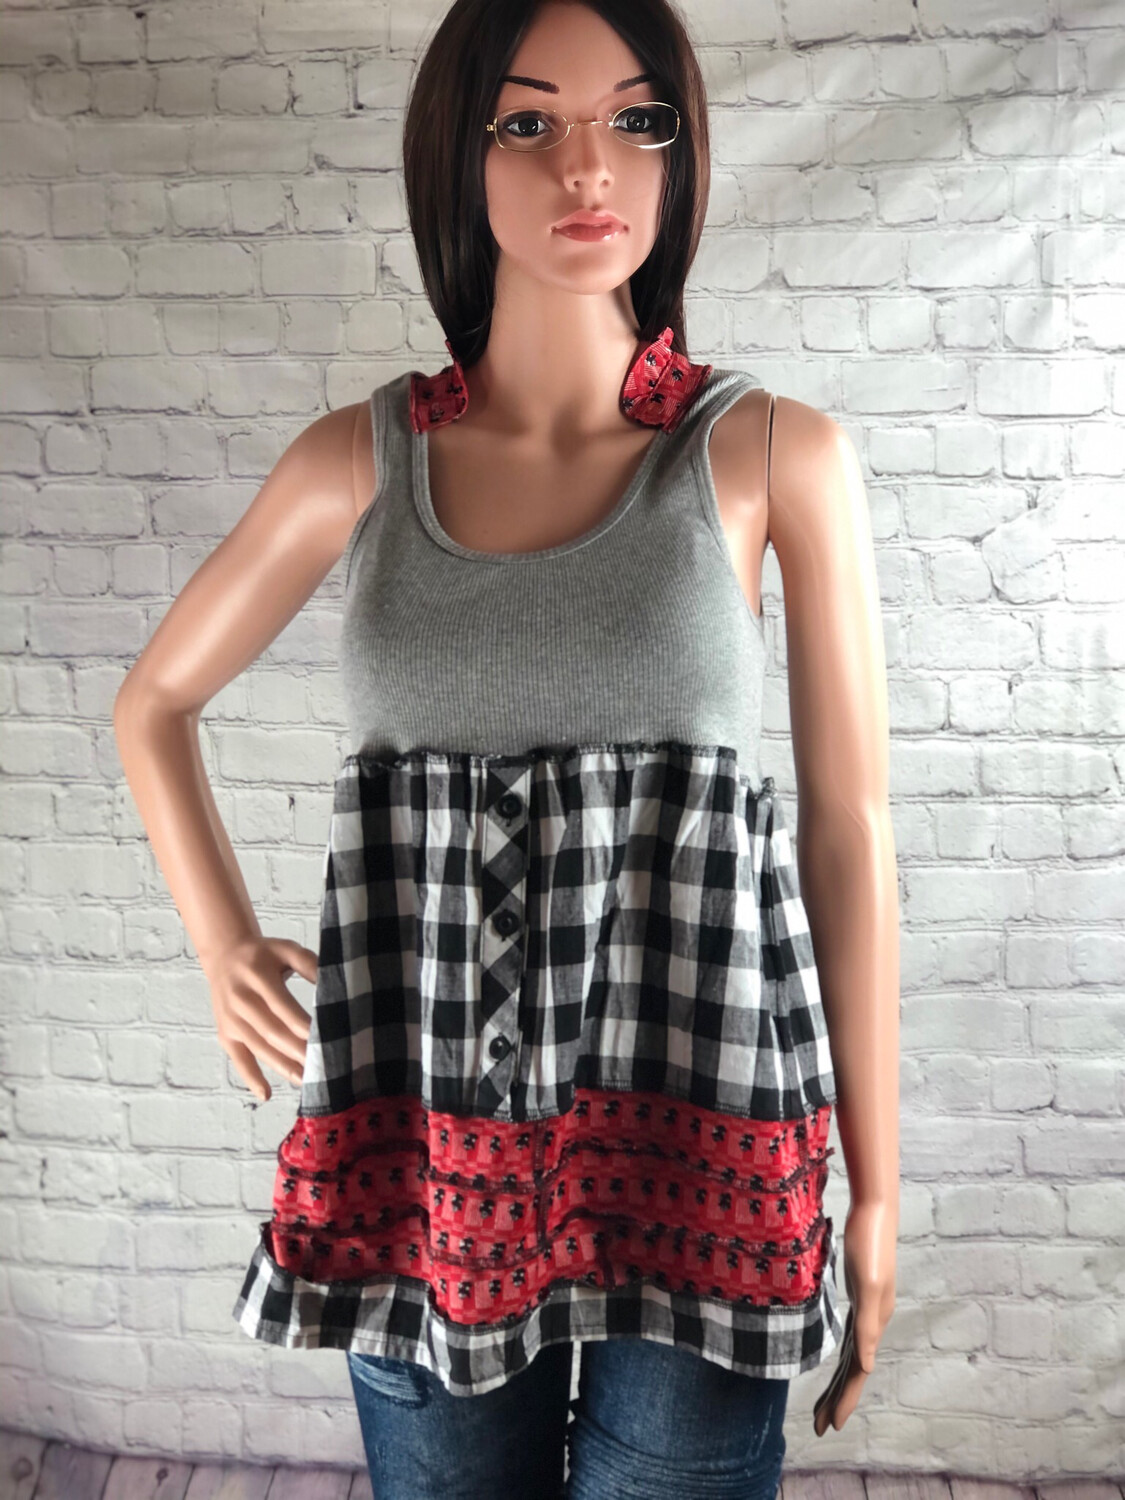 S Threads Upcycled Tank Ruffle Babydoll Top With Collar Size Medium